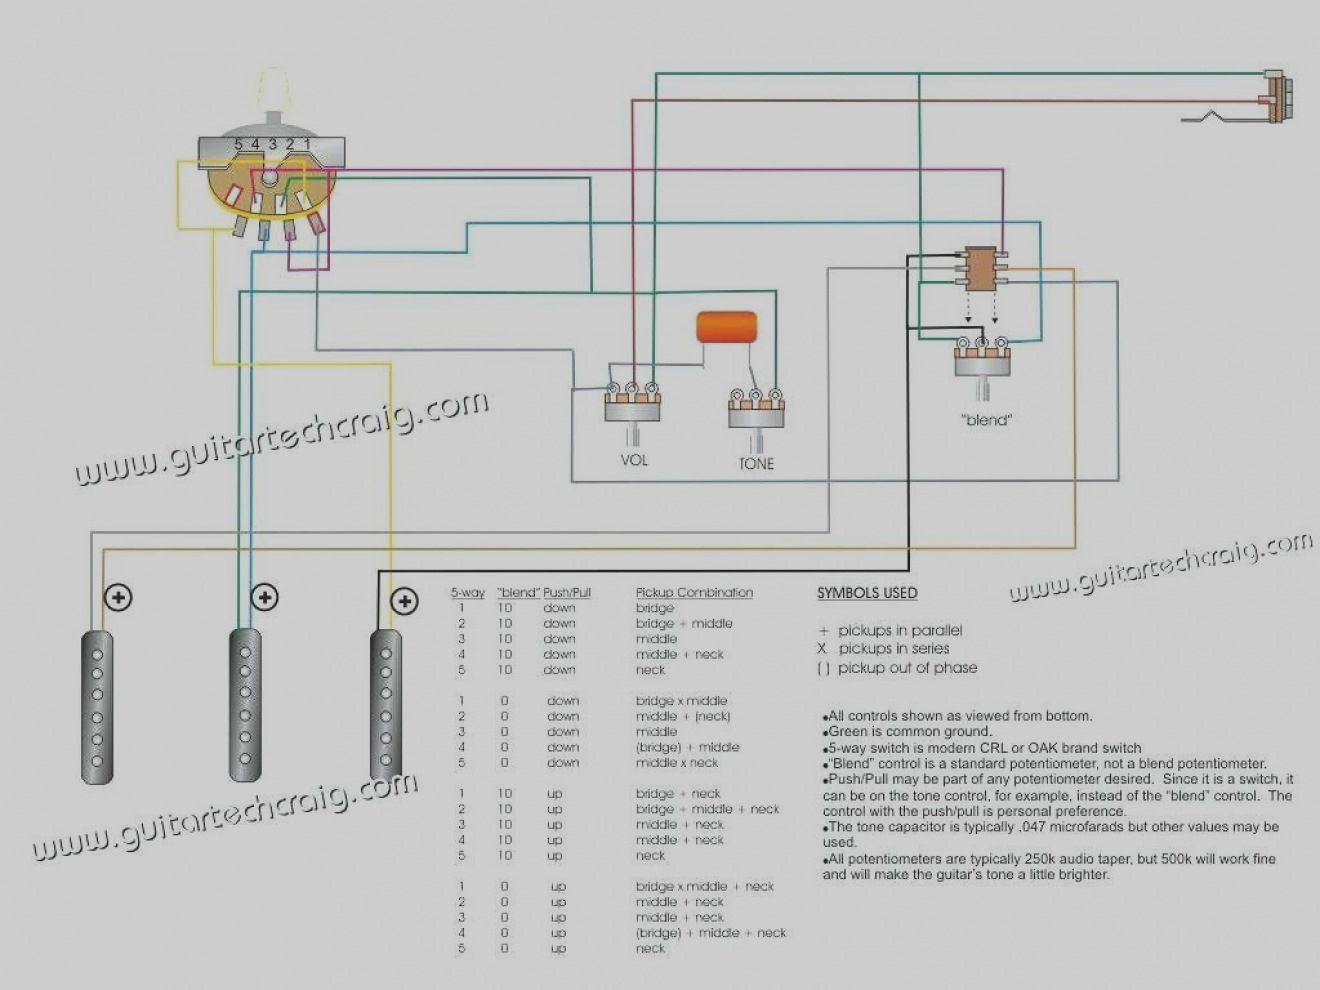 110 Punch Down Block Wiring Diagram | Manual E-Books - 66 Block Wiring Diagram